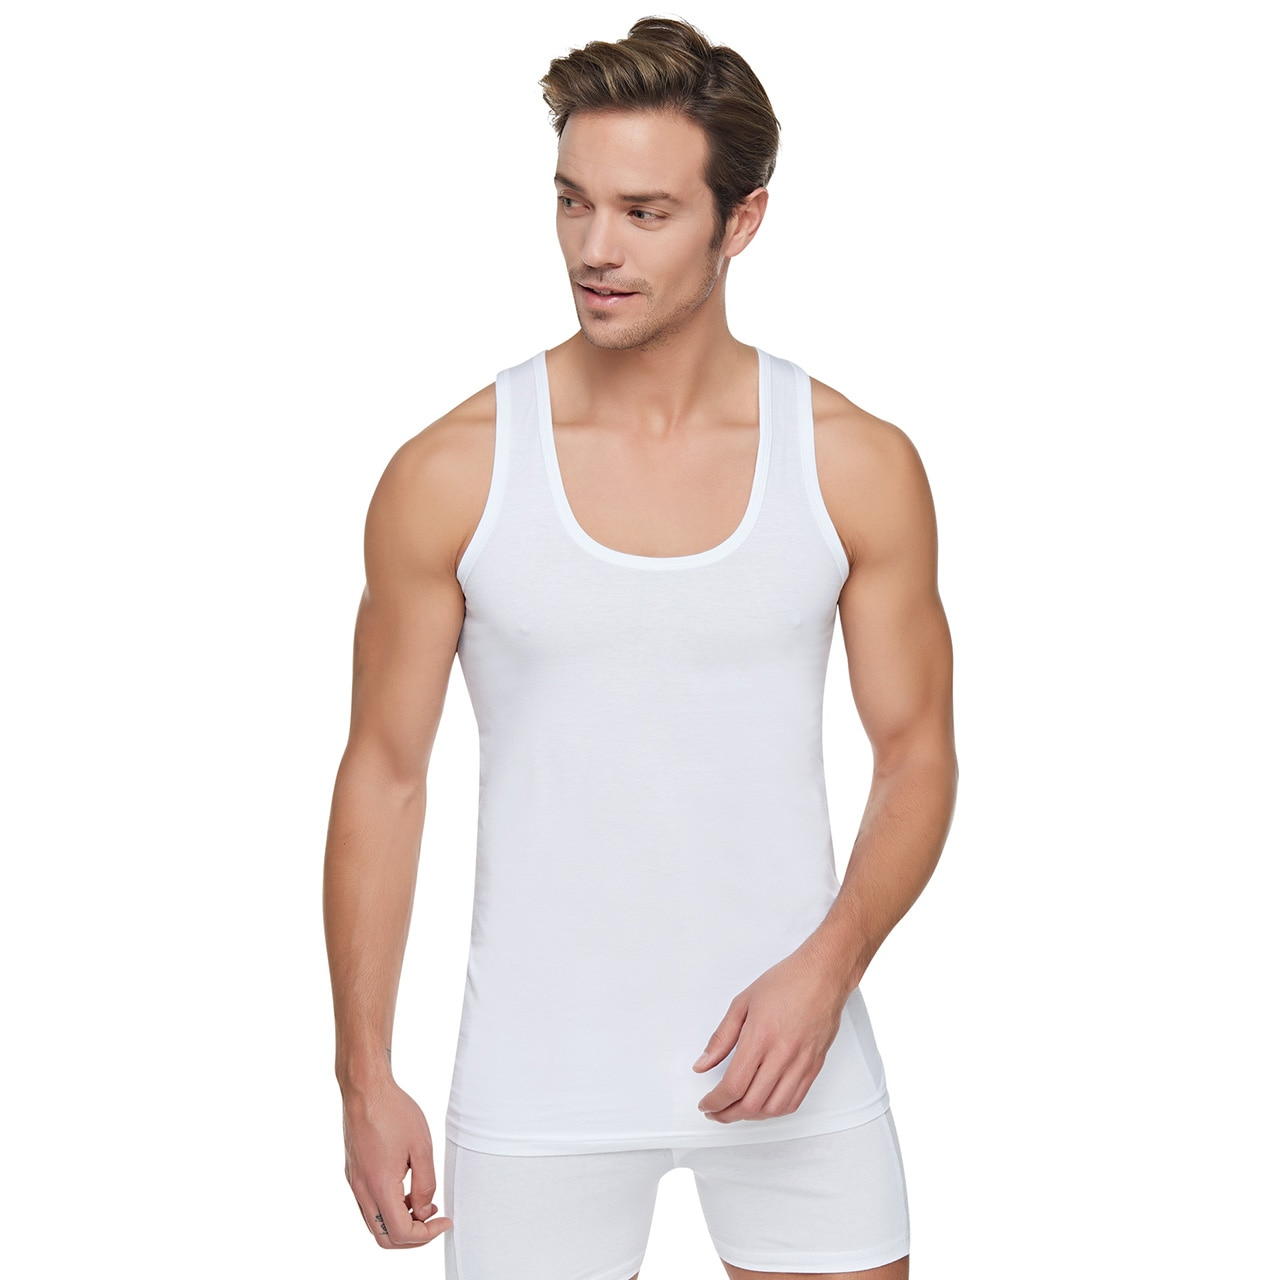 100% COTTON COMBED TOP QUALITY MEN'S ATHLETE 6-PACK